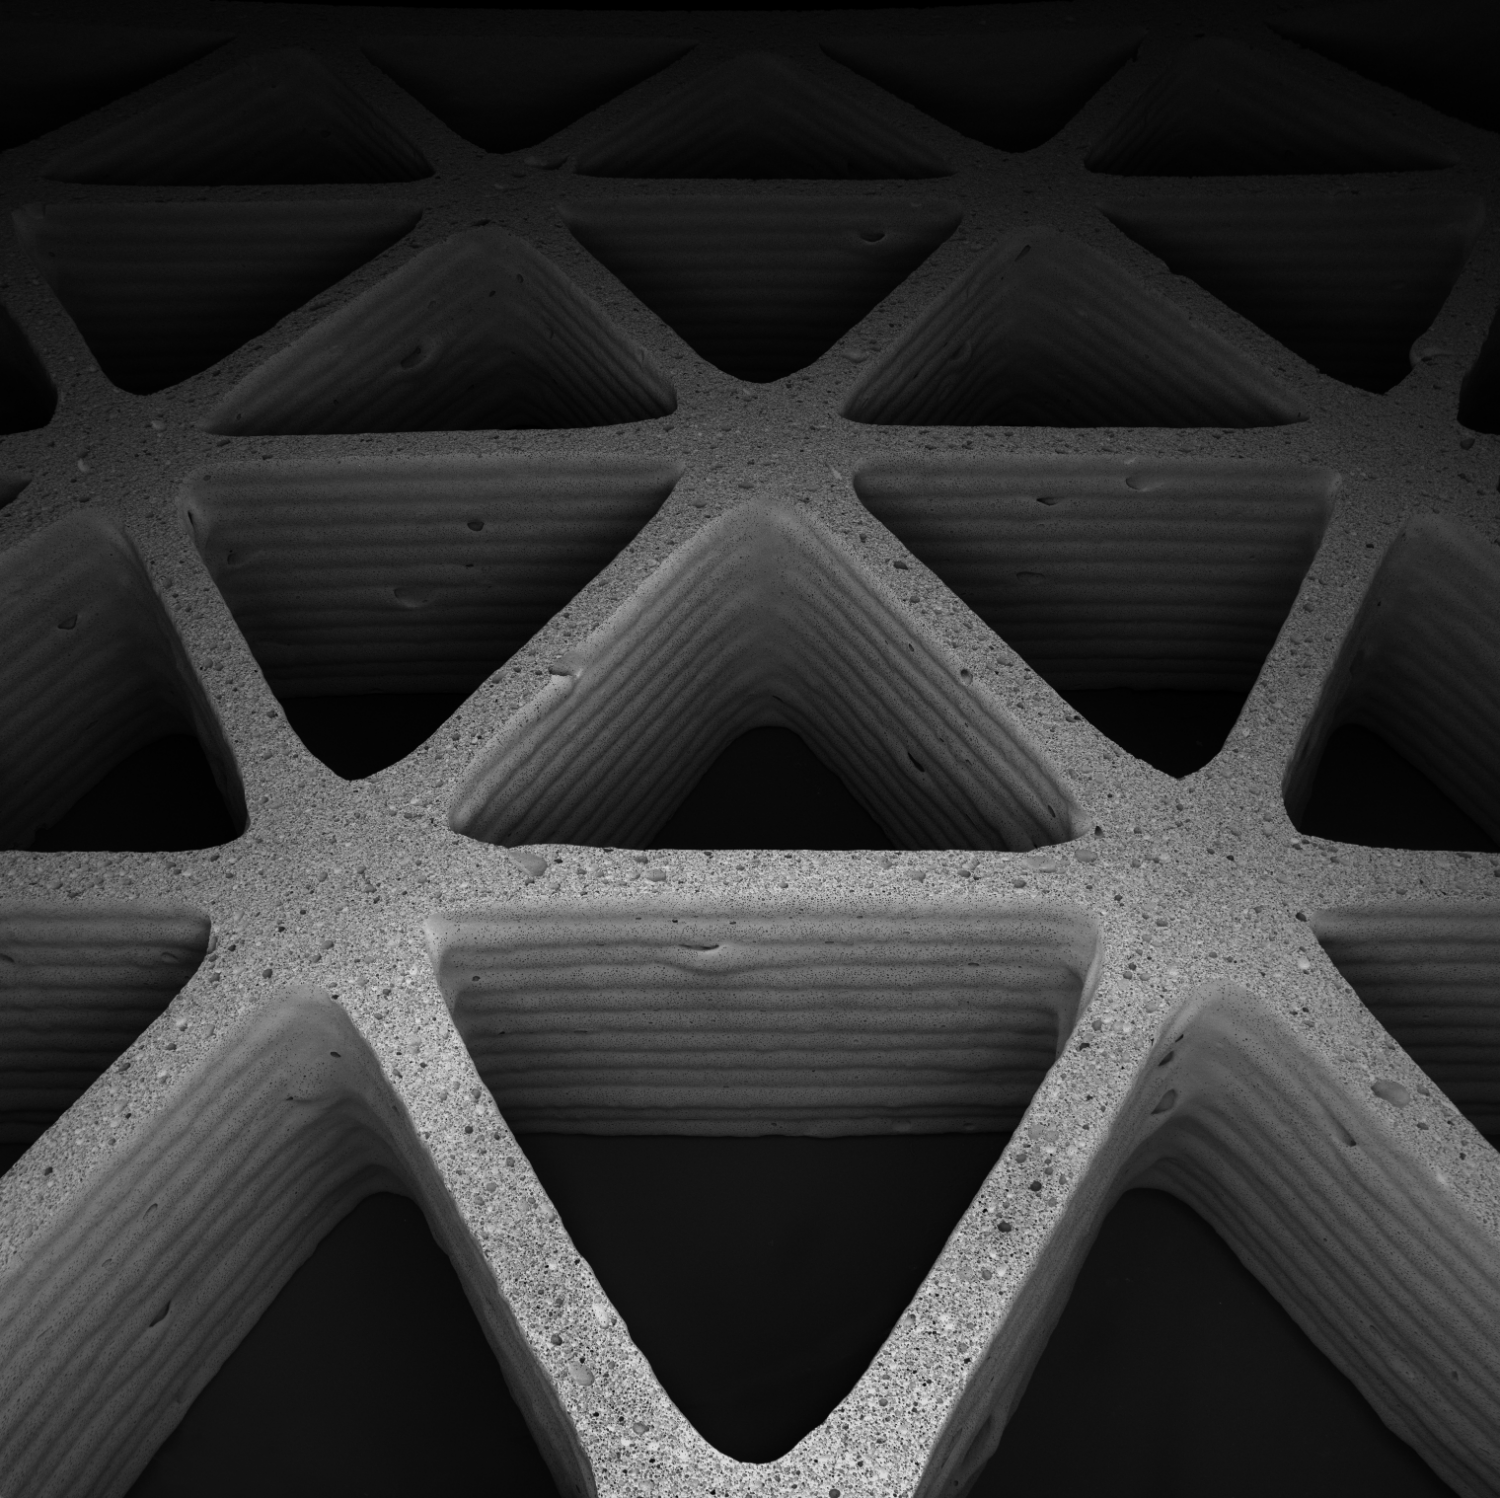 Mimicking Nature S Cellular Architectures Via 3 D Printing